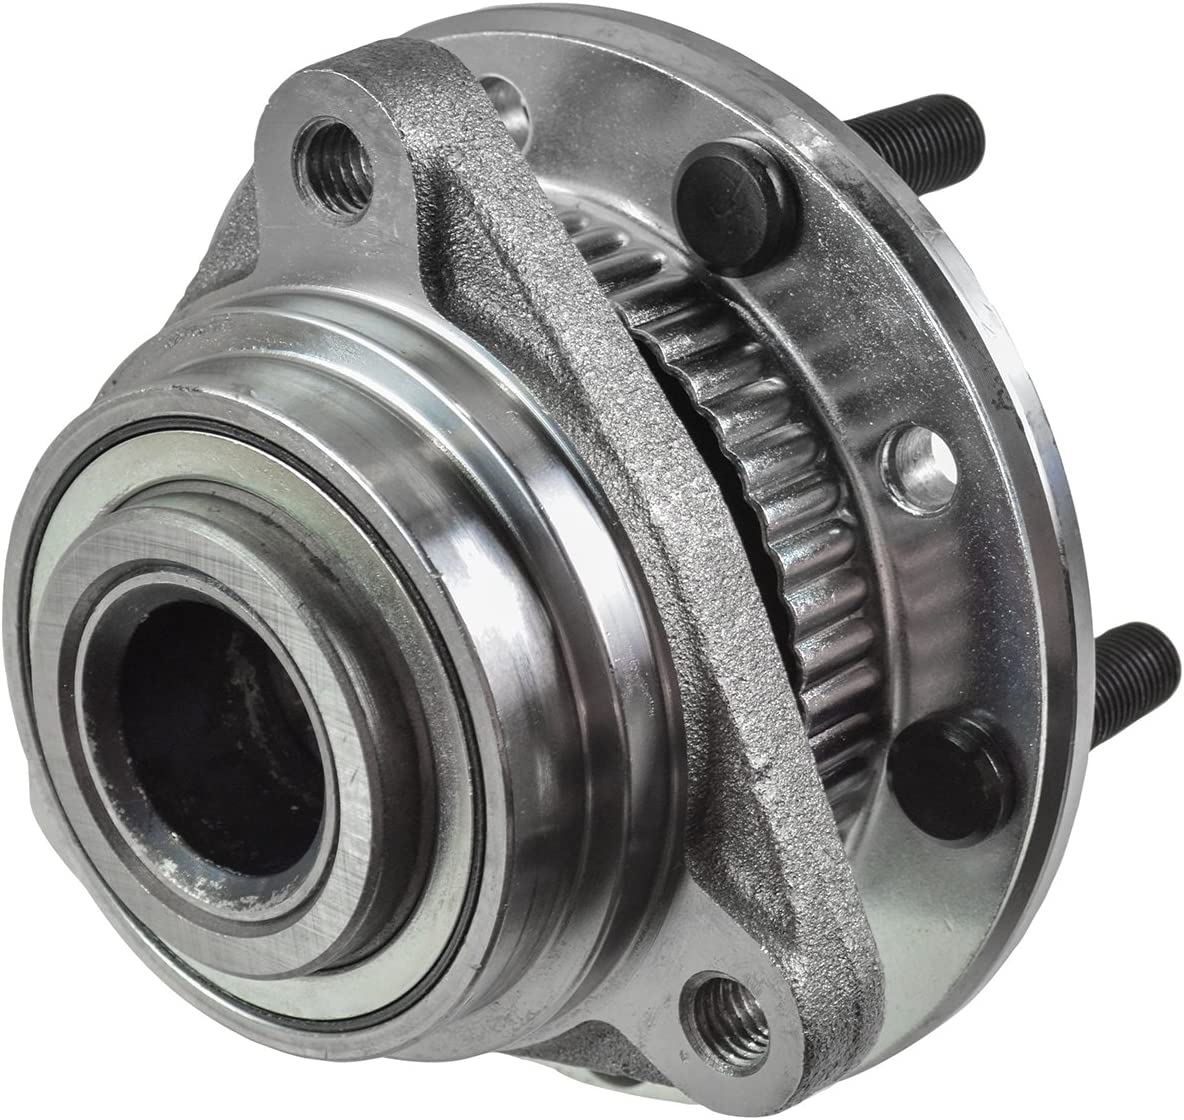 TRQ Front Wheel Hub /& Bearing for Chevy GMC Pickup Truck S10 Olds 4x4 4WD